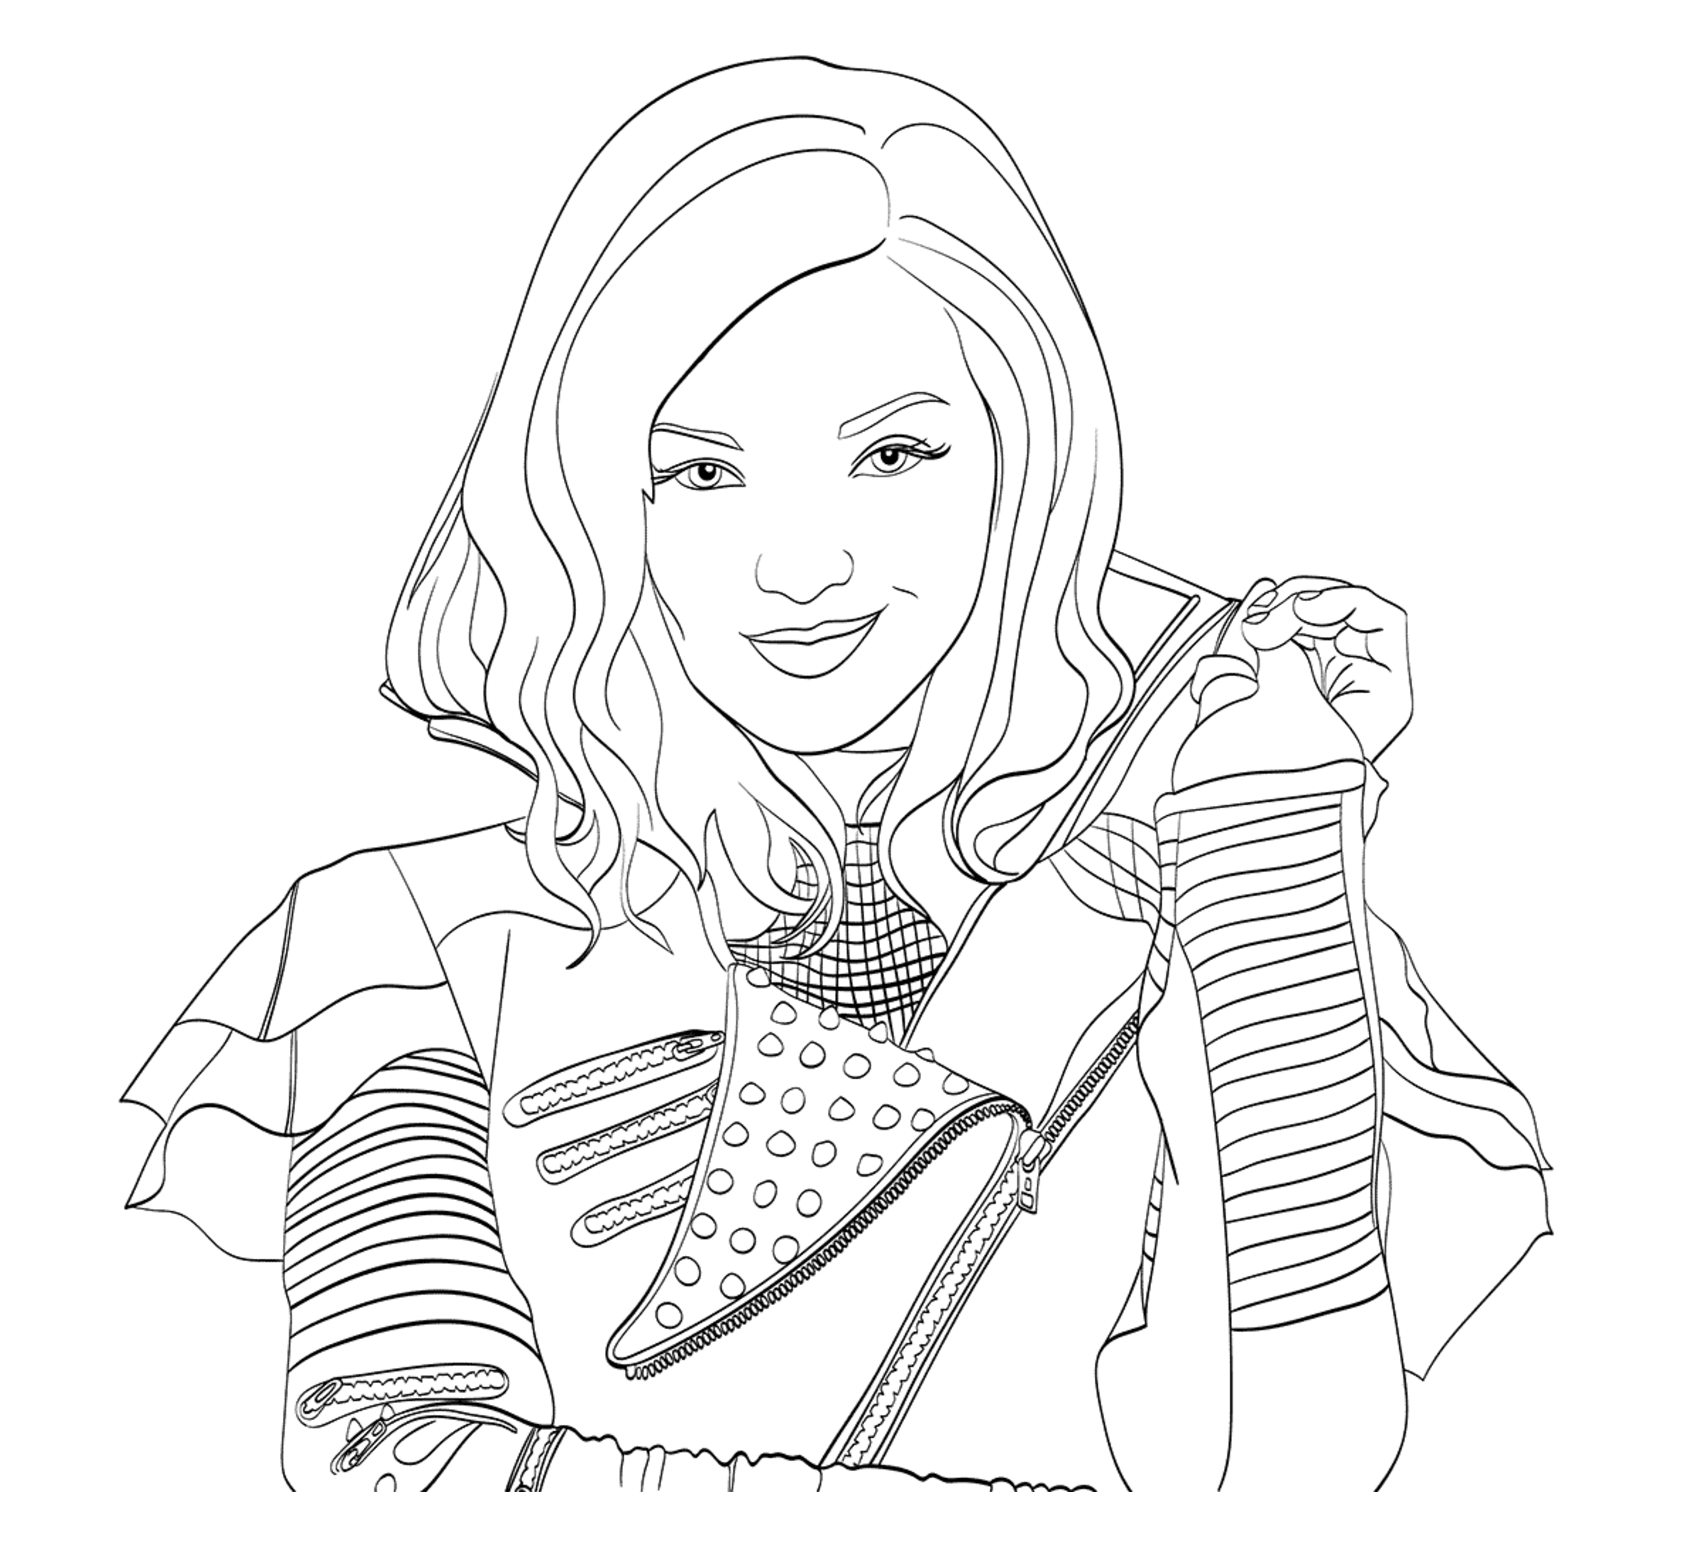 Free The Descendants Coloring Page To Print And Color From The Gallery The Descendants Descendants Coloring Pages Disney Coloring Pages Coloring Pages